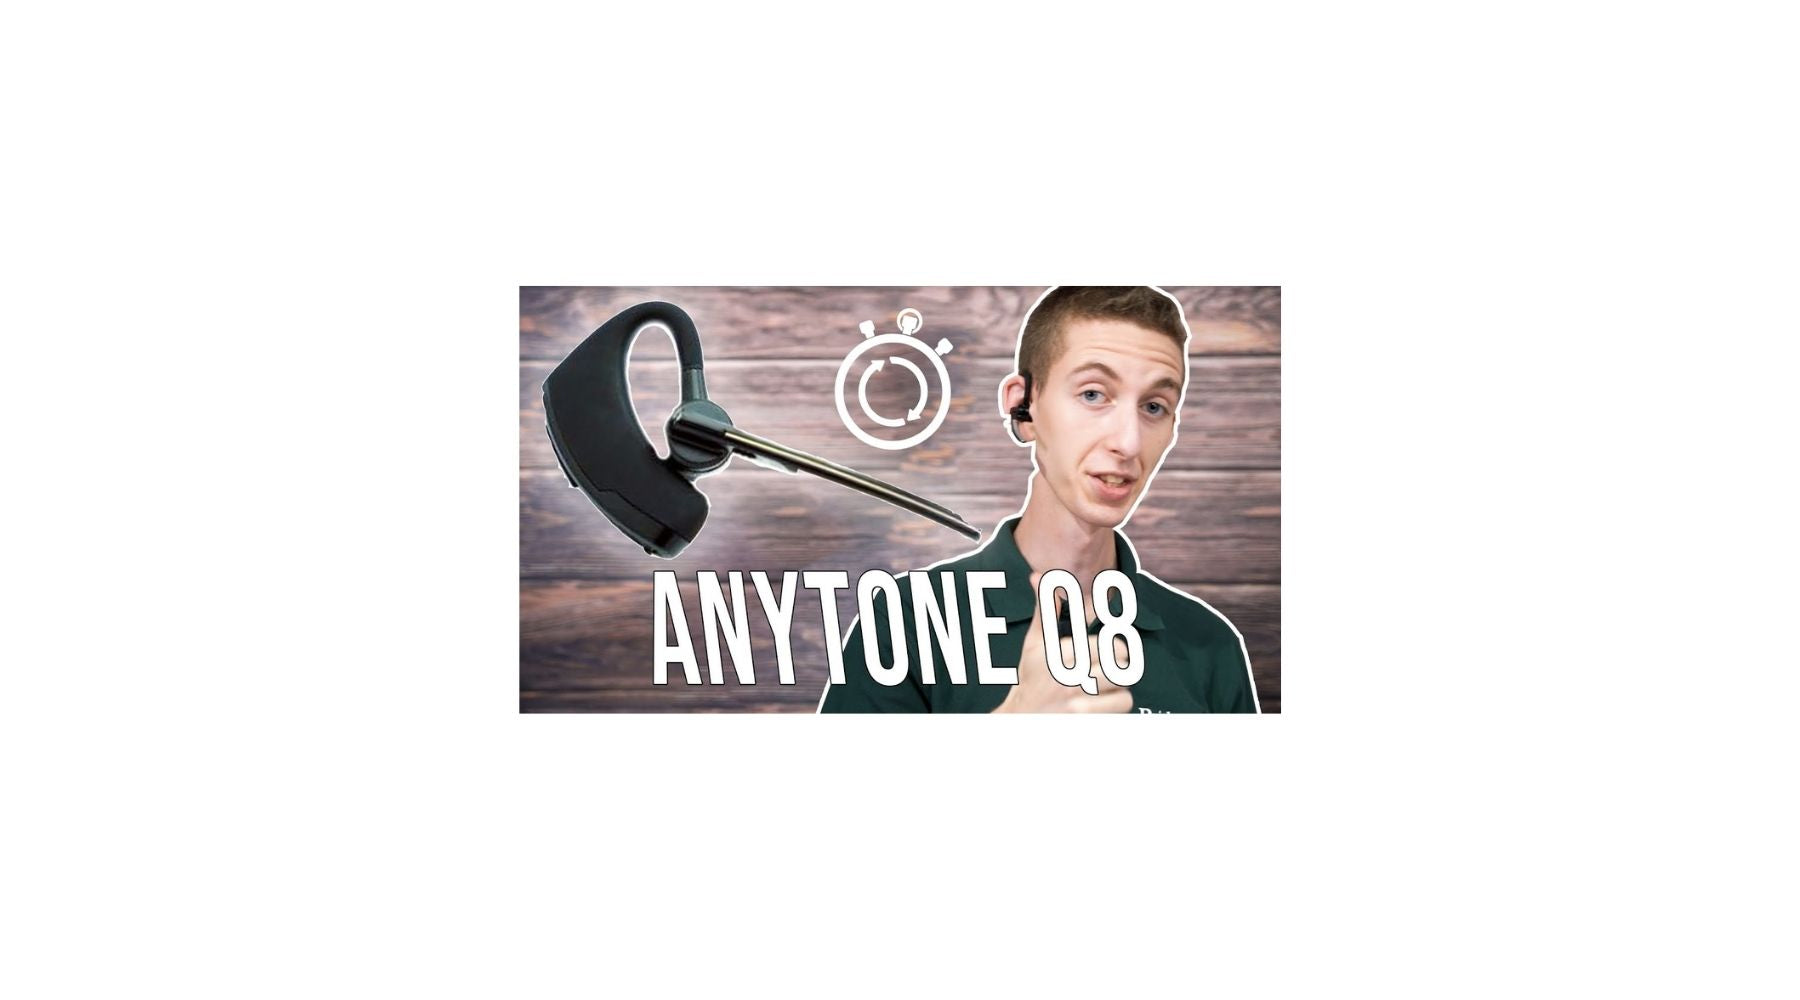 AnyTone Q8 Bluetooth Earpiece Quick Start Guide